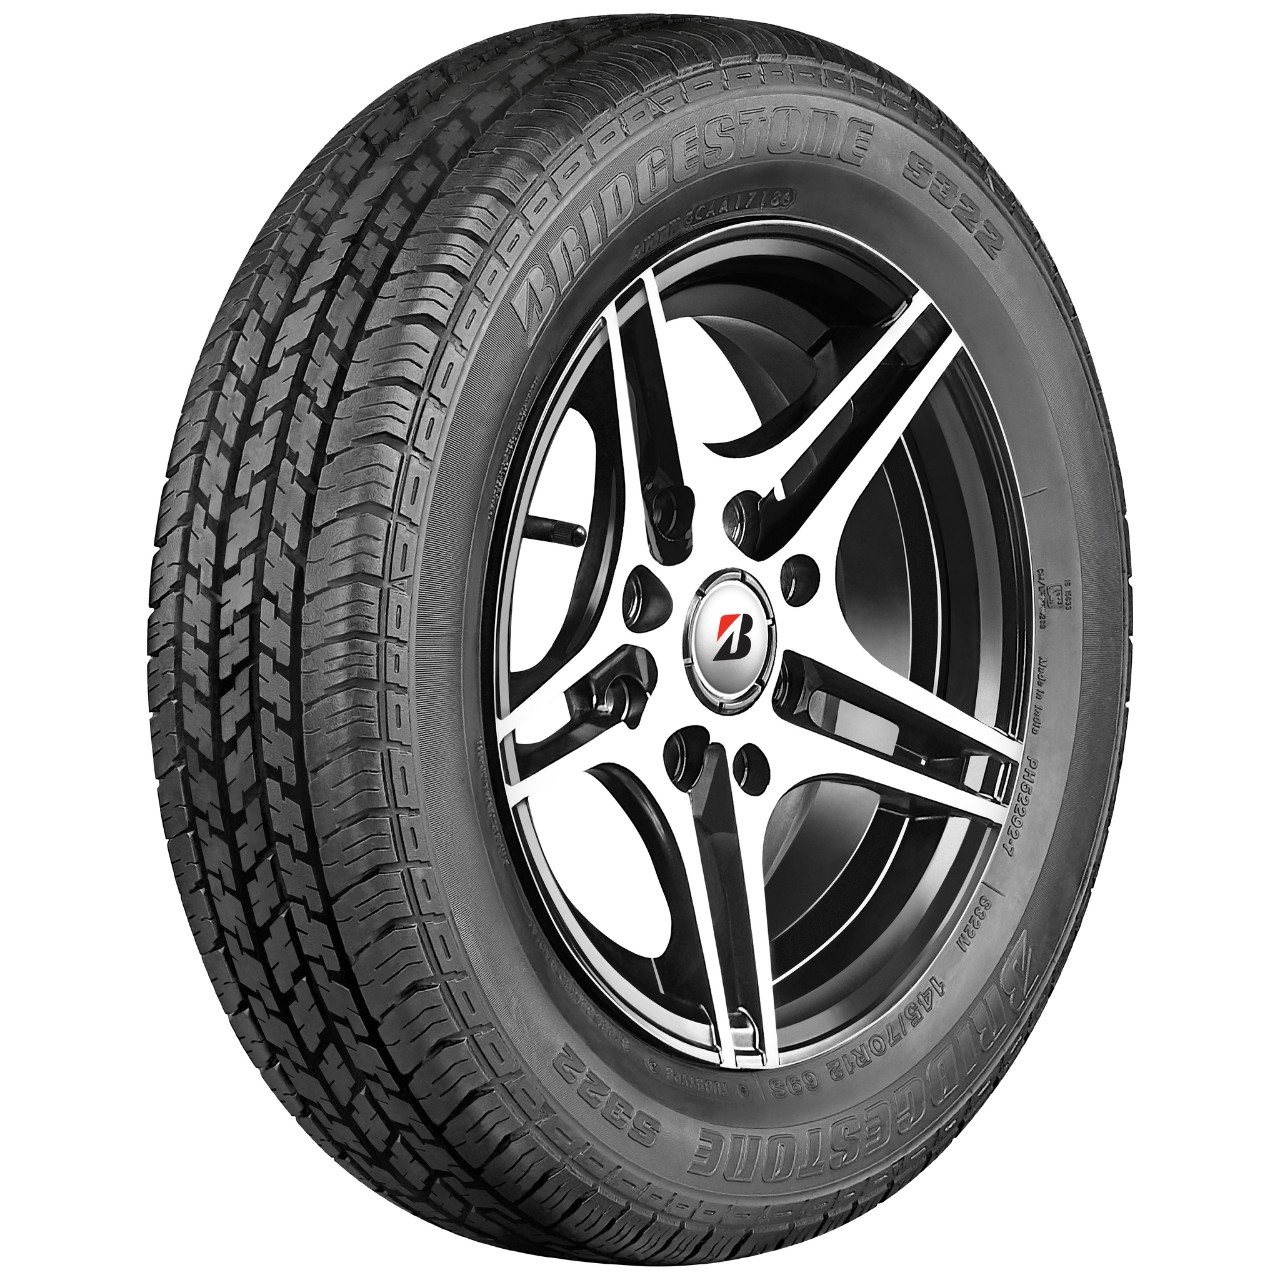 Bridgestone S-Series S322